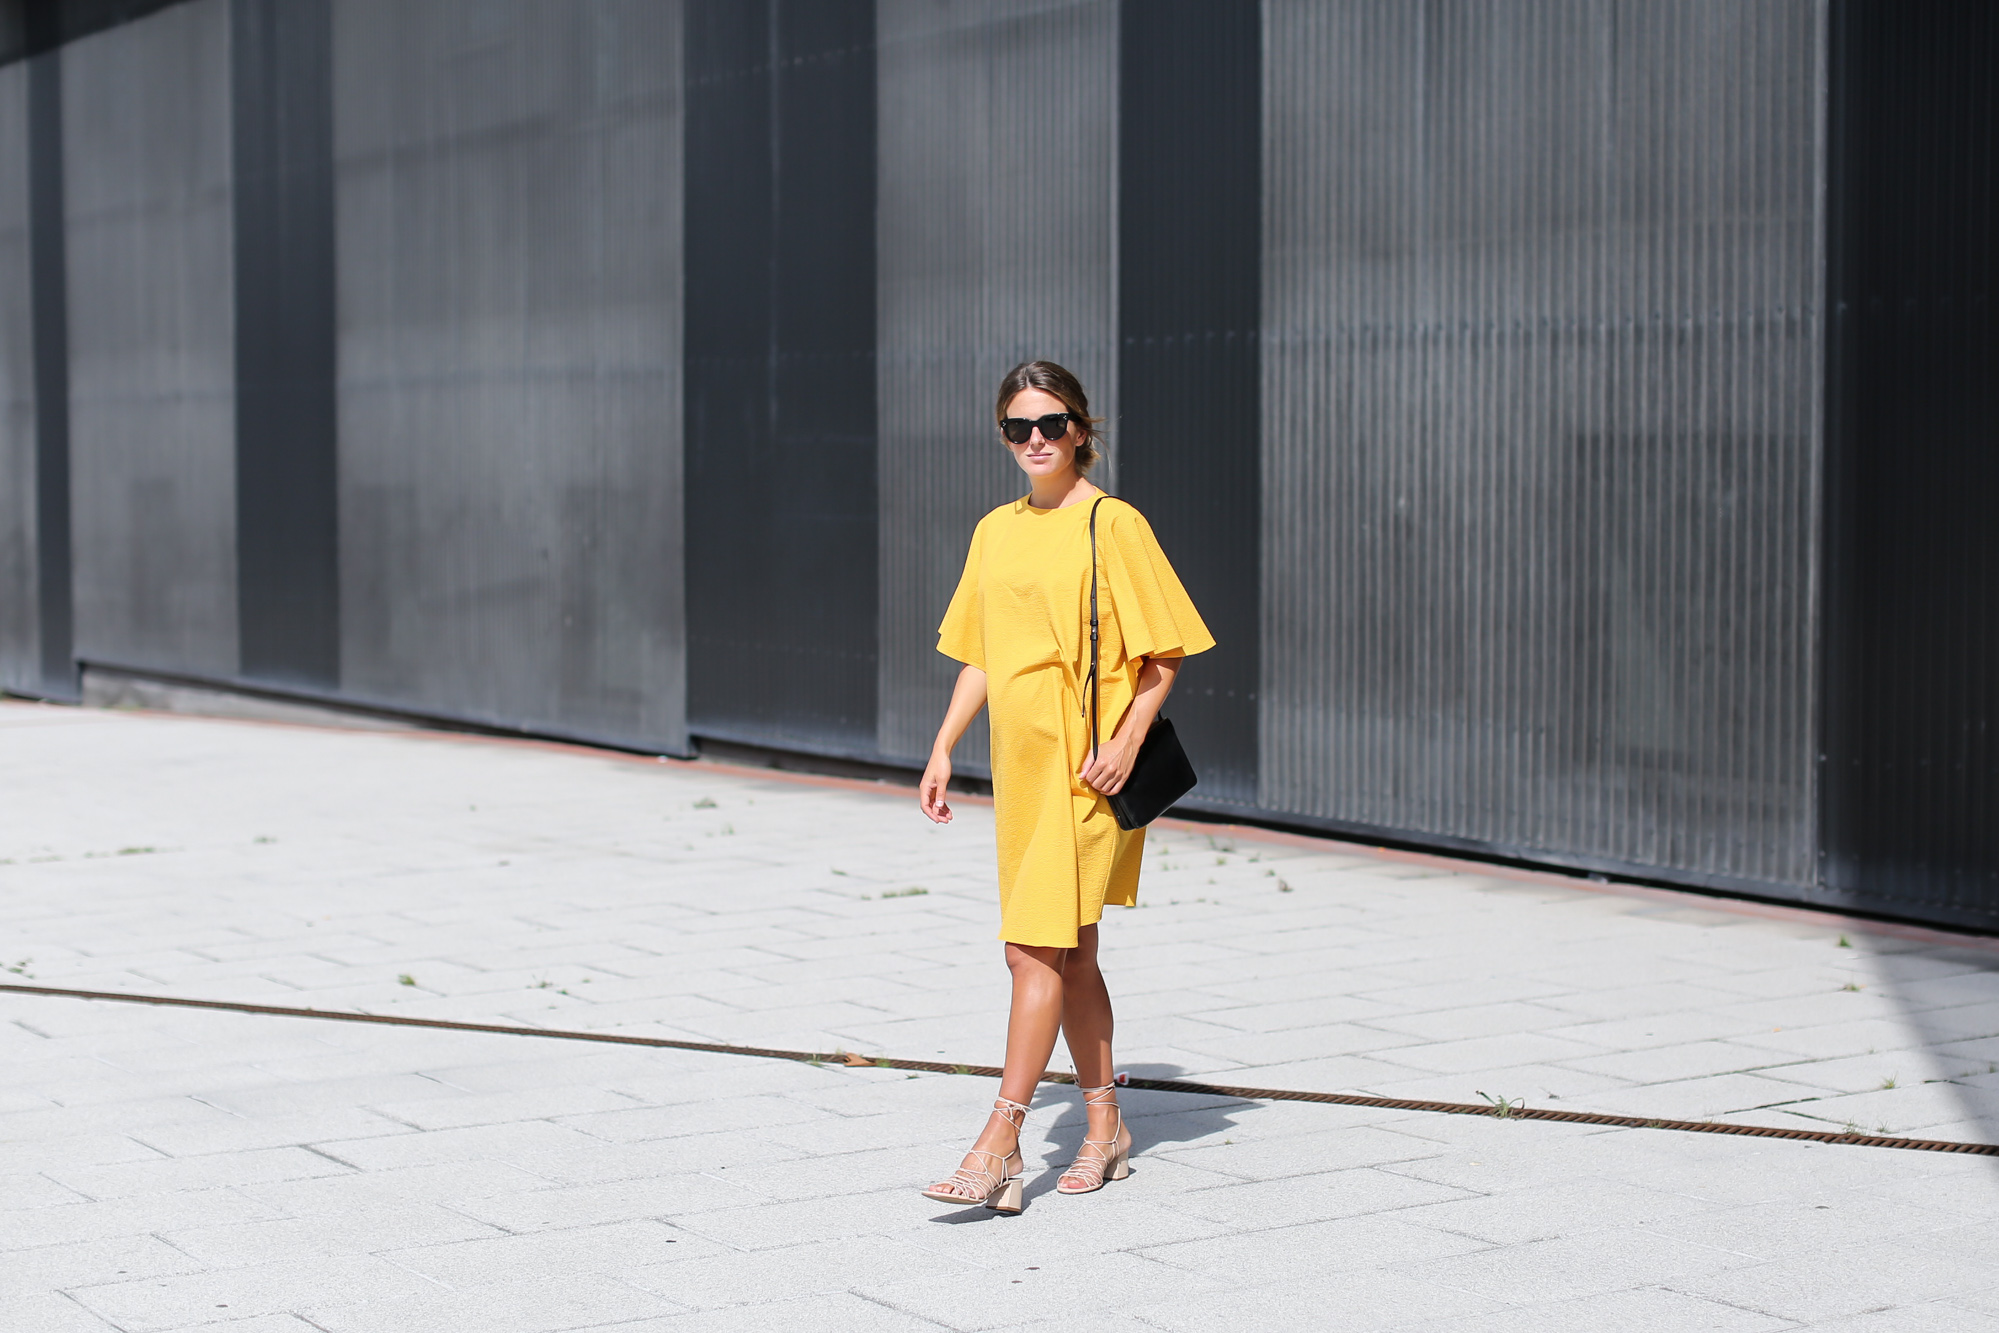 Clochet_streetstyle_fashionblogger_bilbao_zara_joinlife_yellow_minimaldress_celinetriobag-6